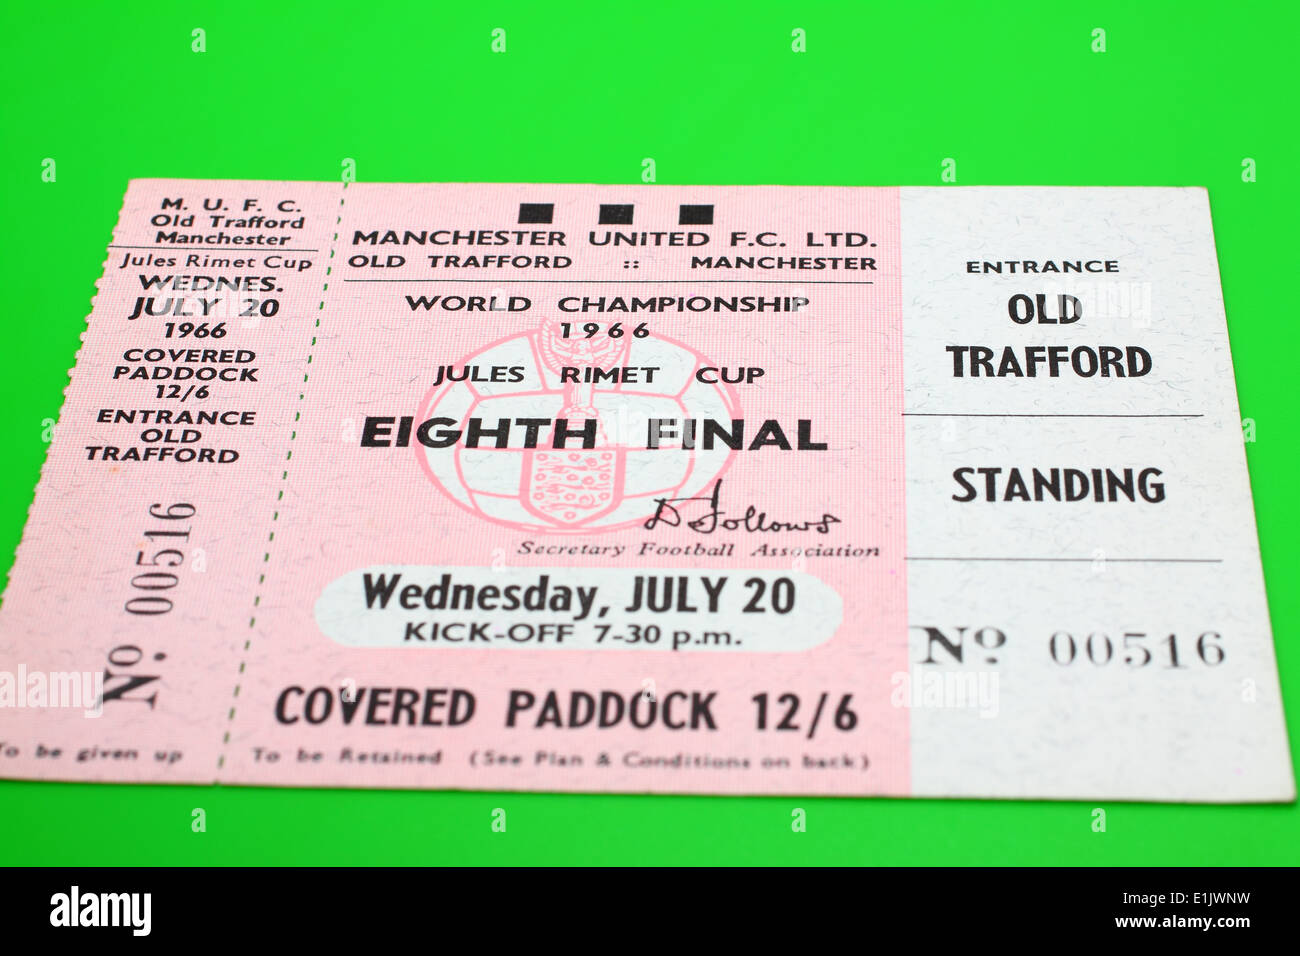 Original 1966 World Cup tickets for the Eighth Final match - Hungary V Bulgaria on a green background Stock Photo